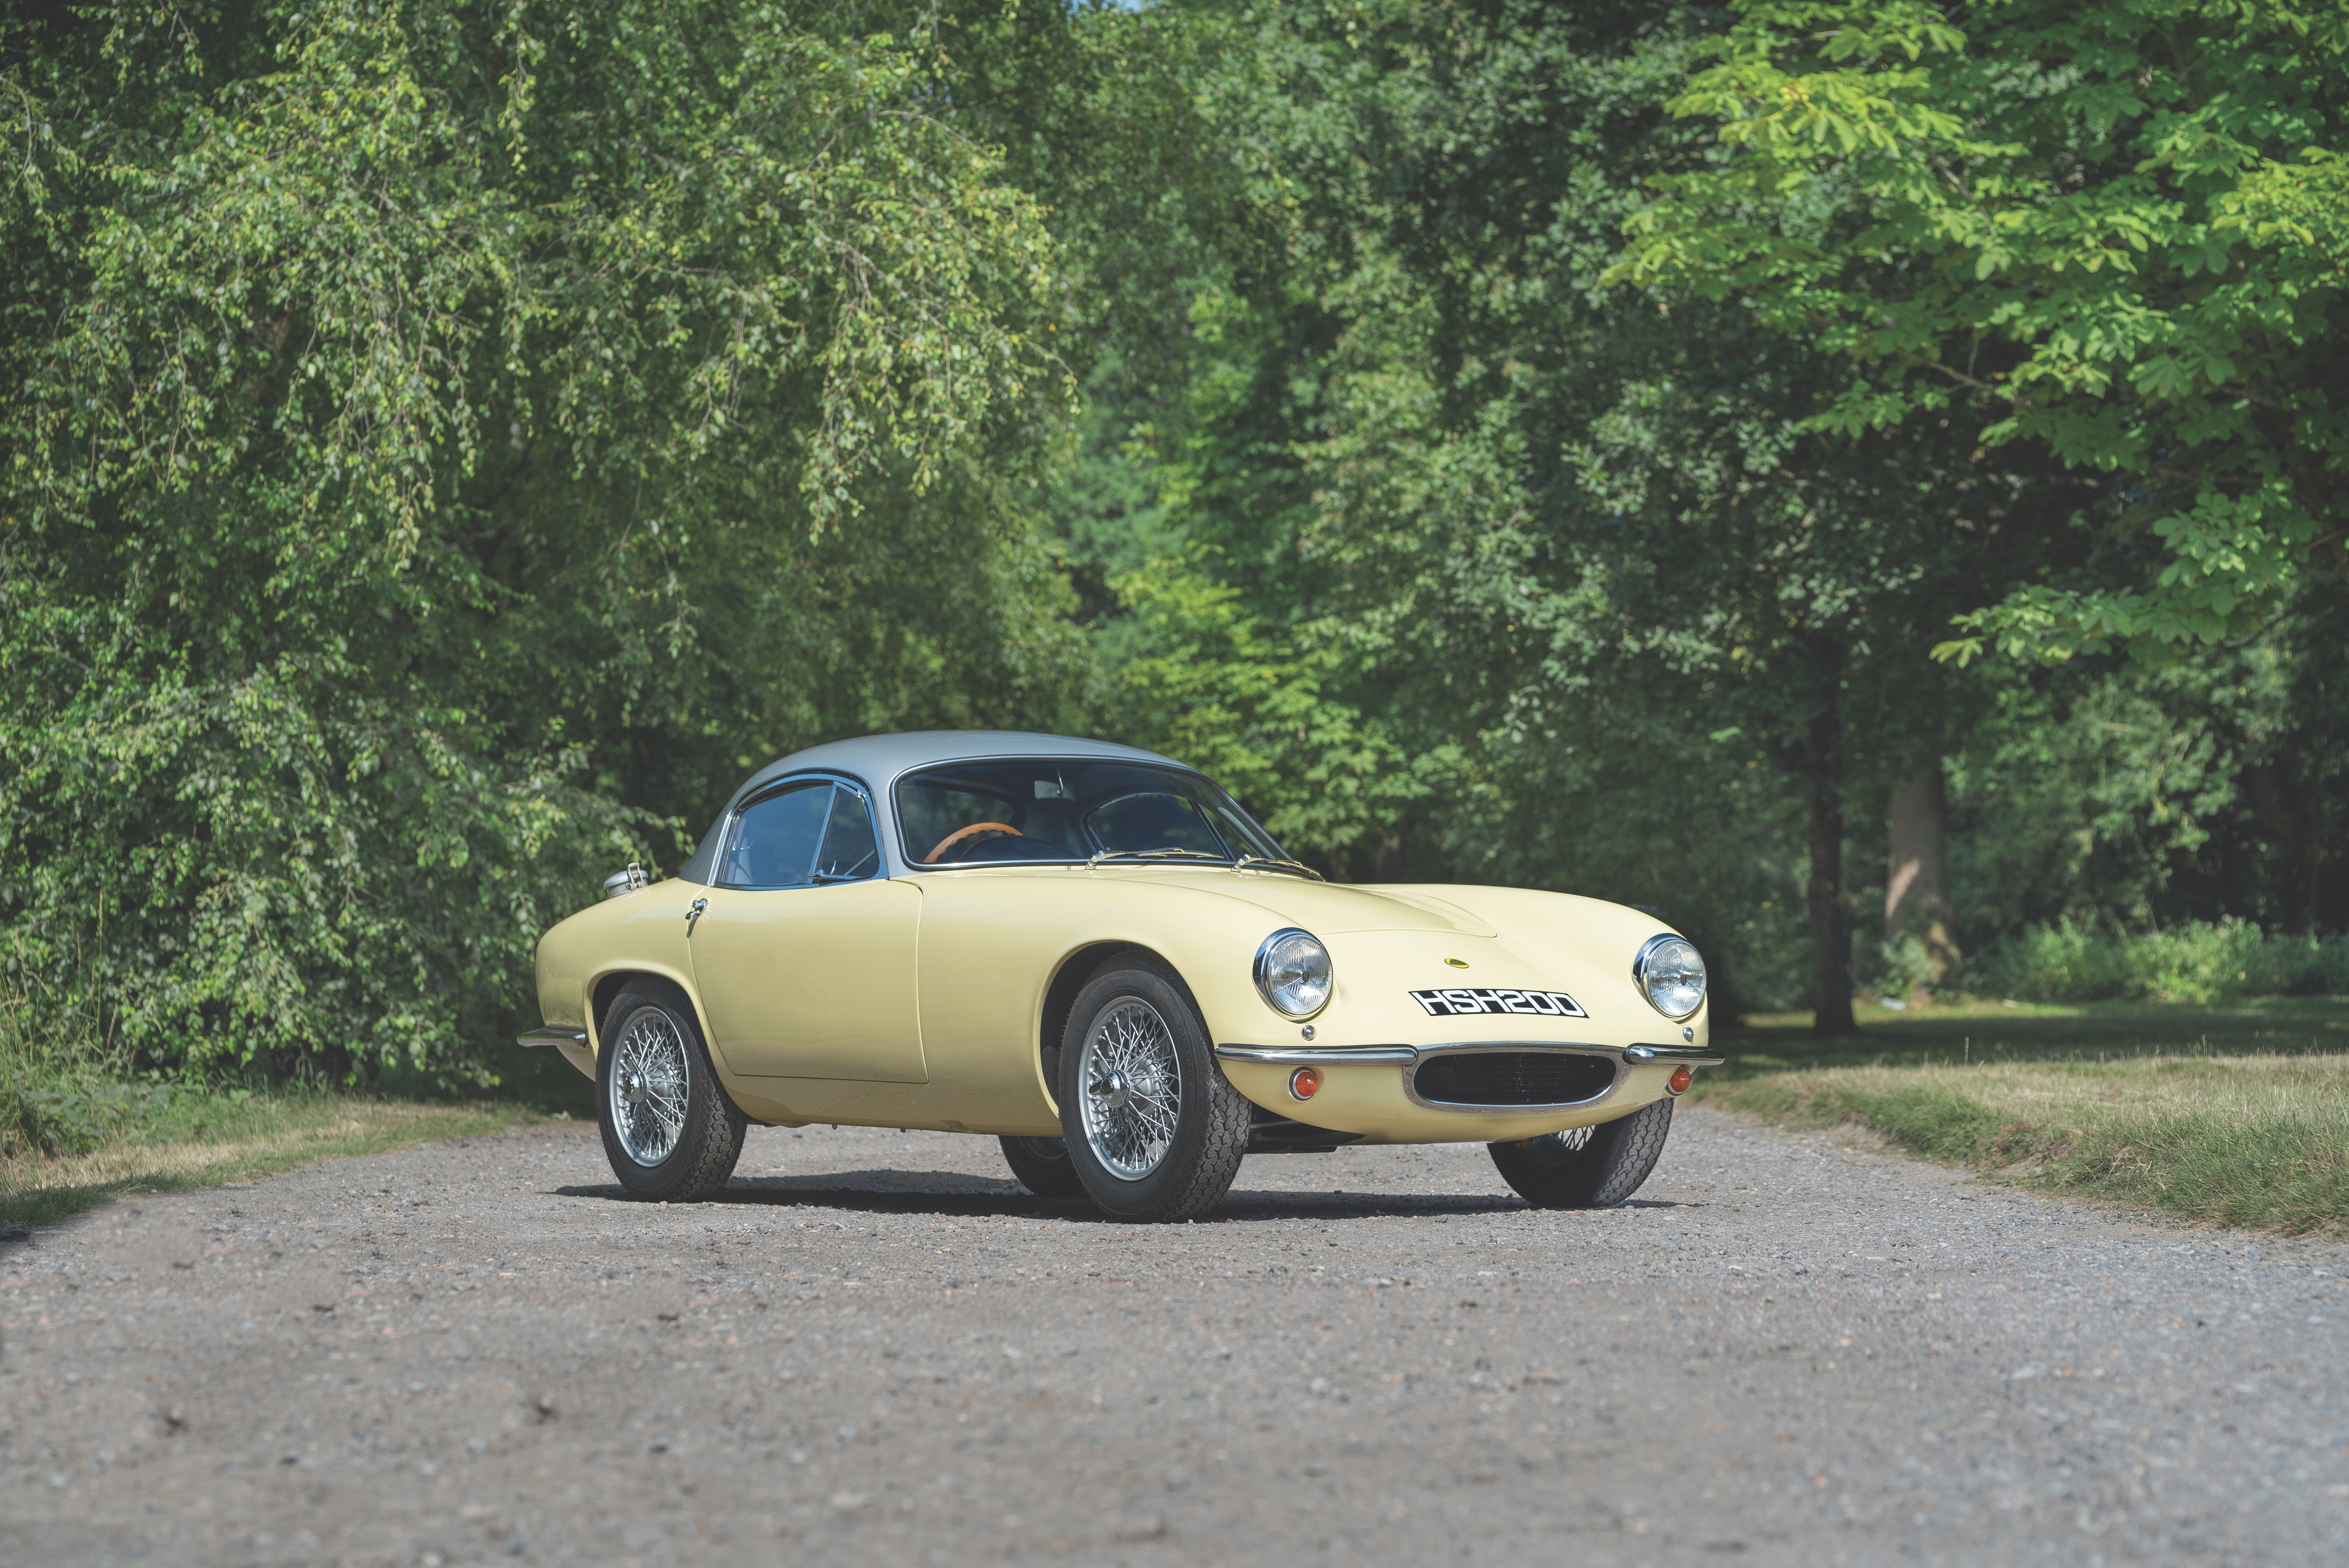 Lotus Elite Super 95 - RM Sotheby's London Auction